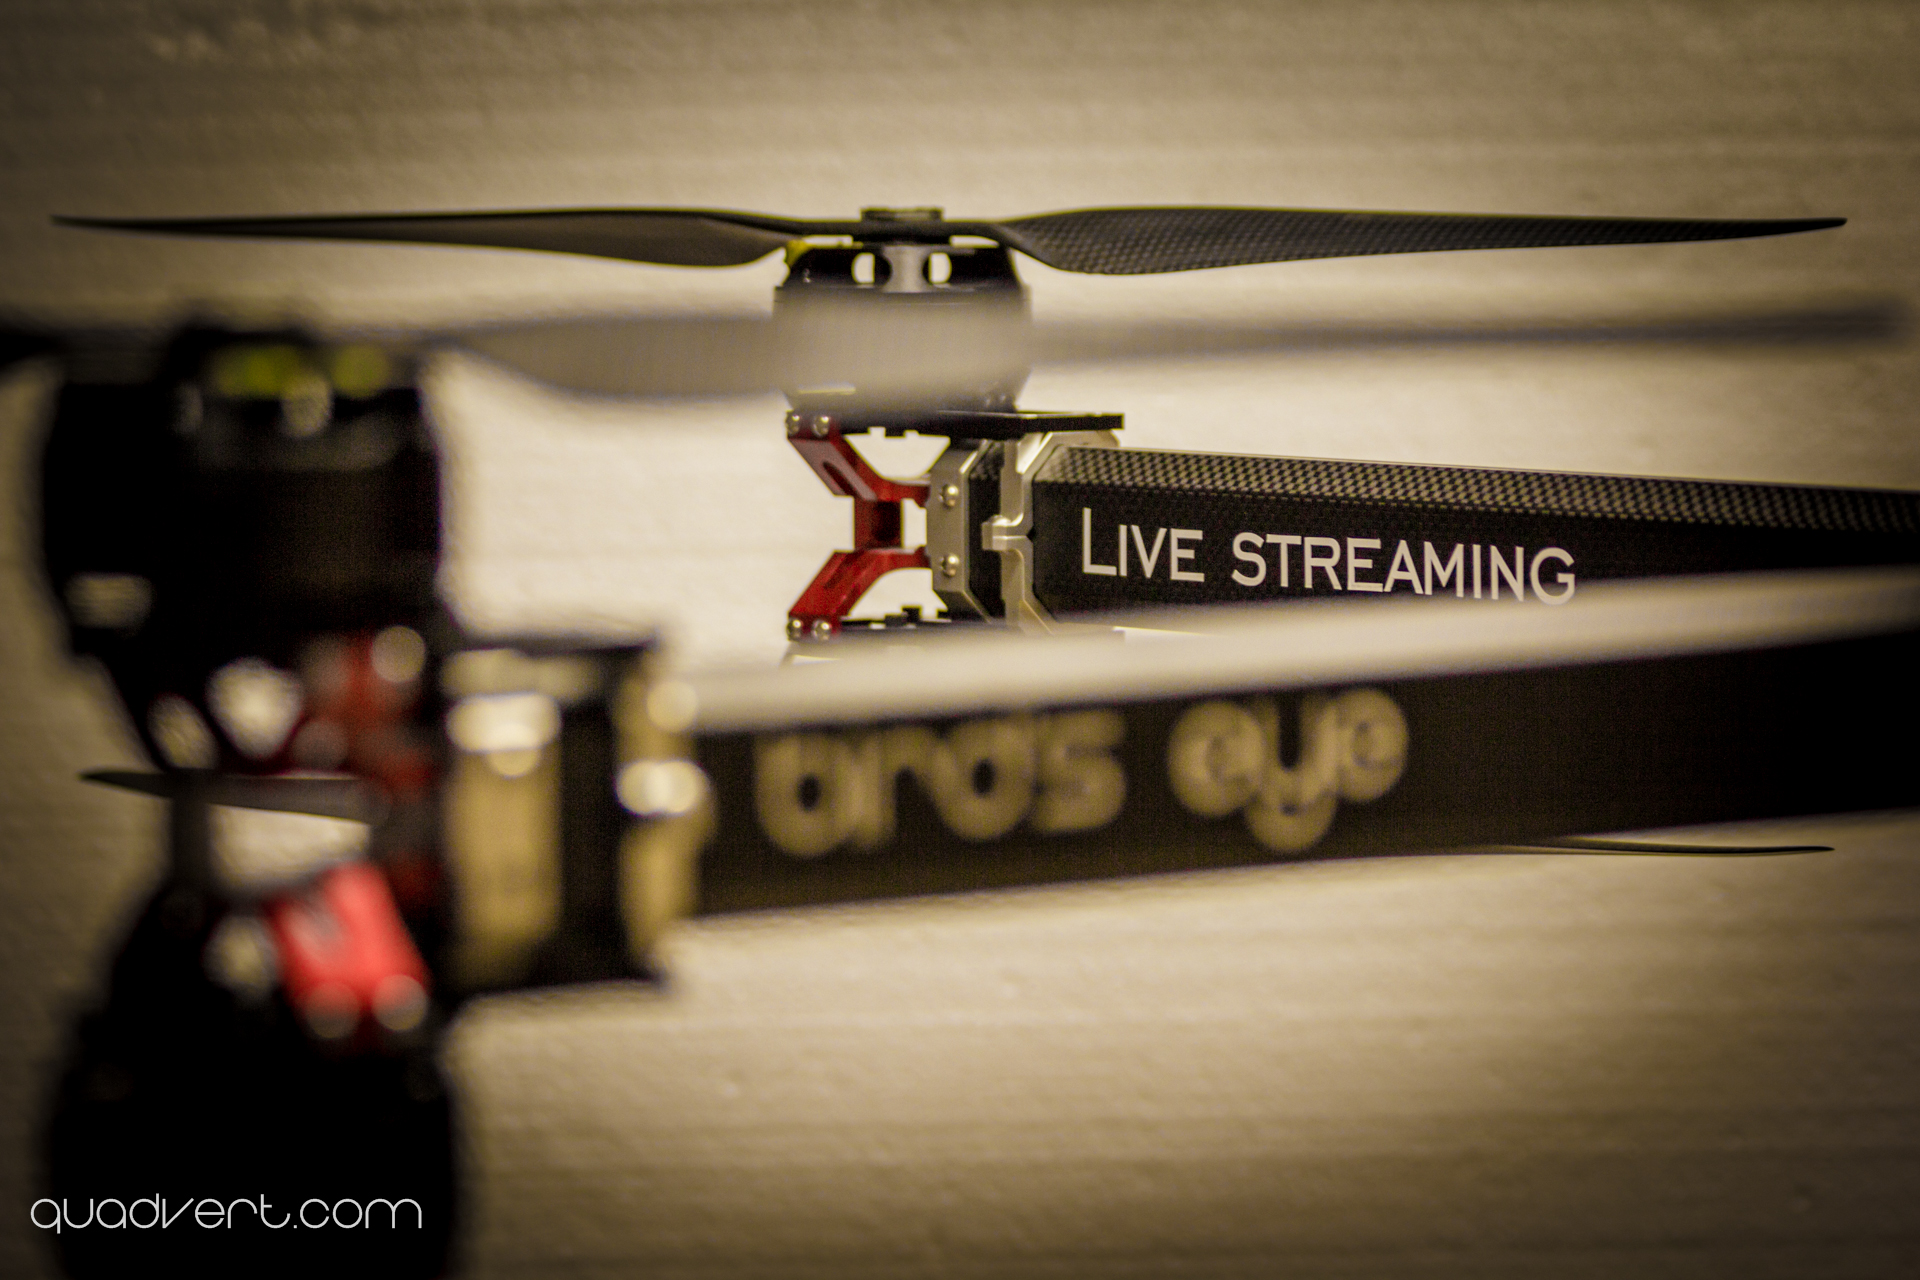 Octa Drone HD live streaming